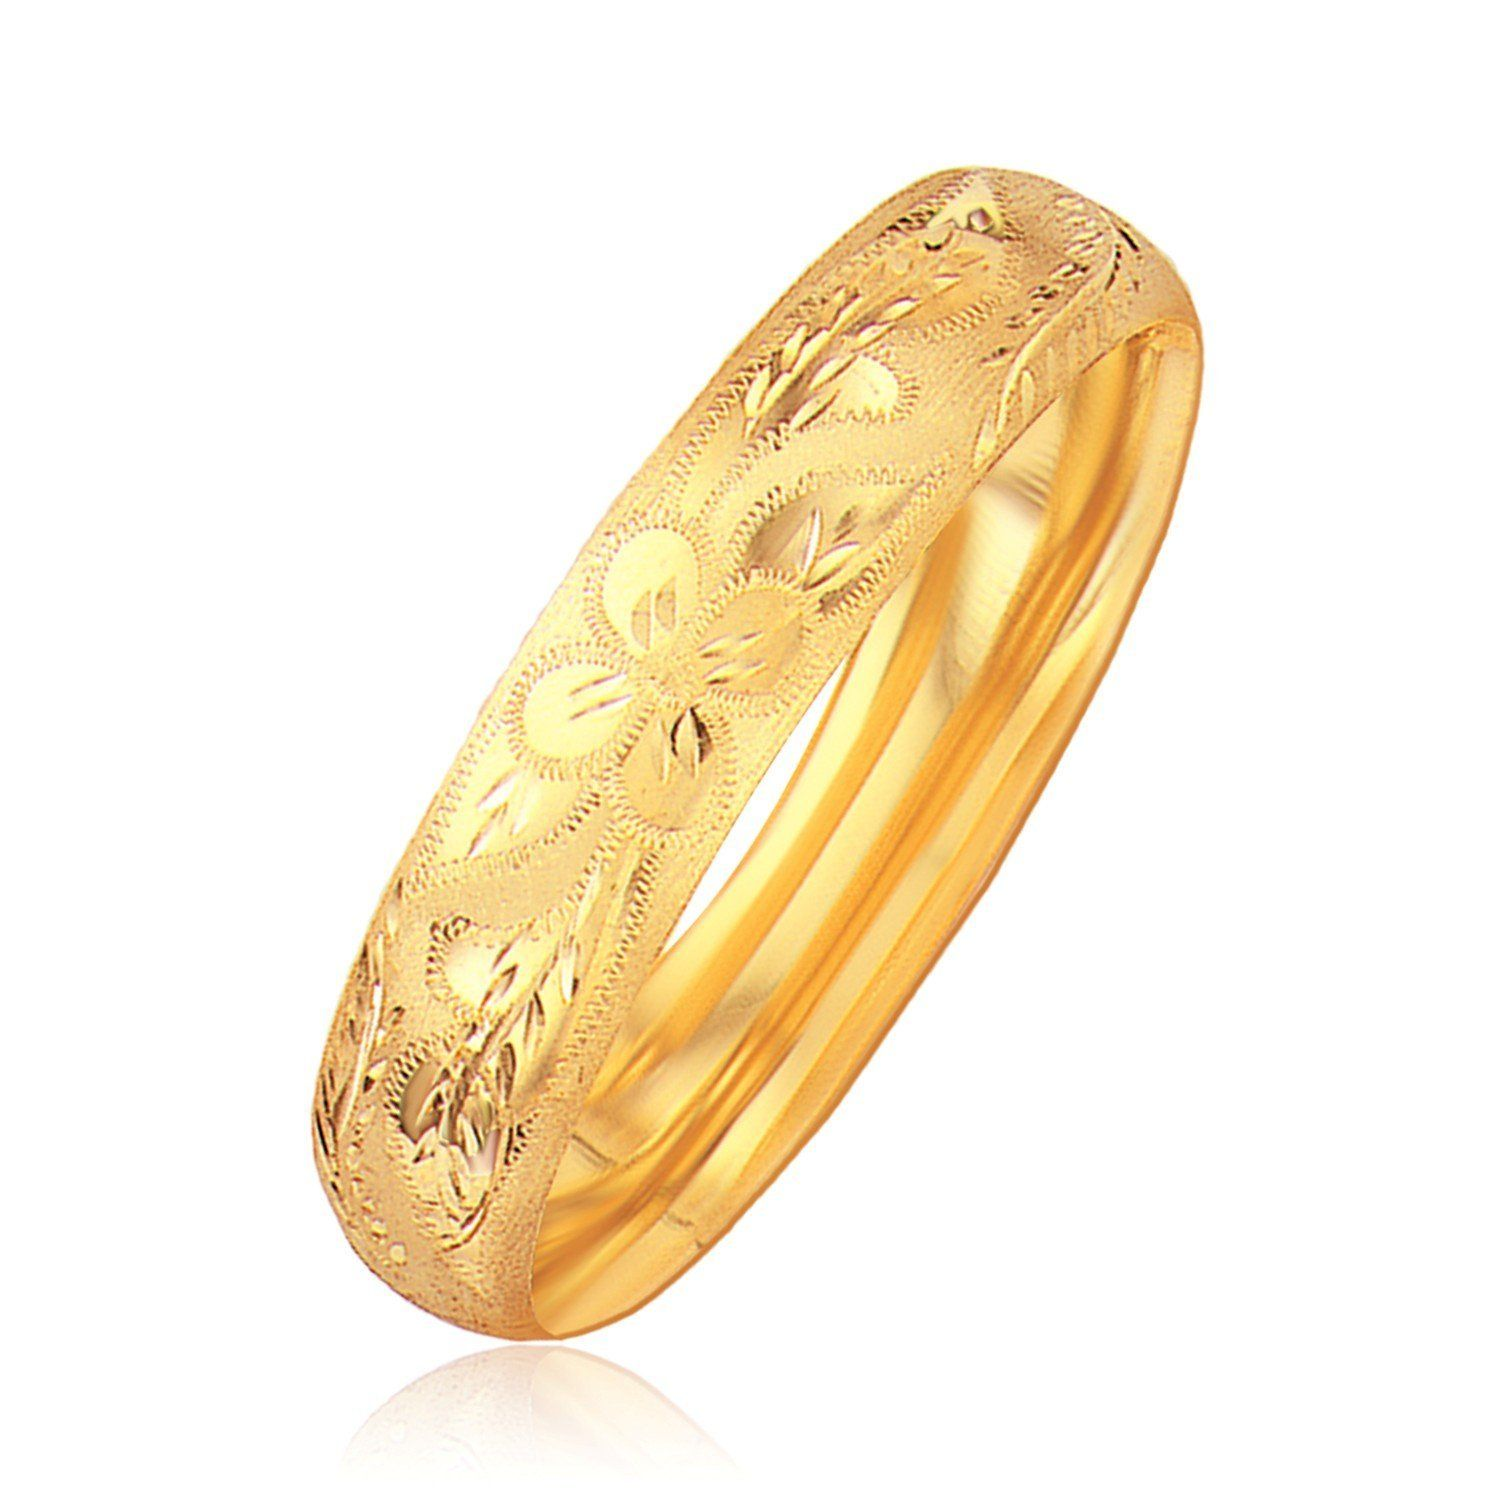 gold overstock karat s inch free watches link diamond yellow bangles solid bracelet today bangle identification mens men cut jewelry shipping nugget bracelets product